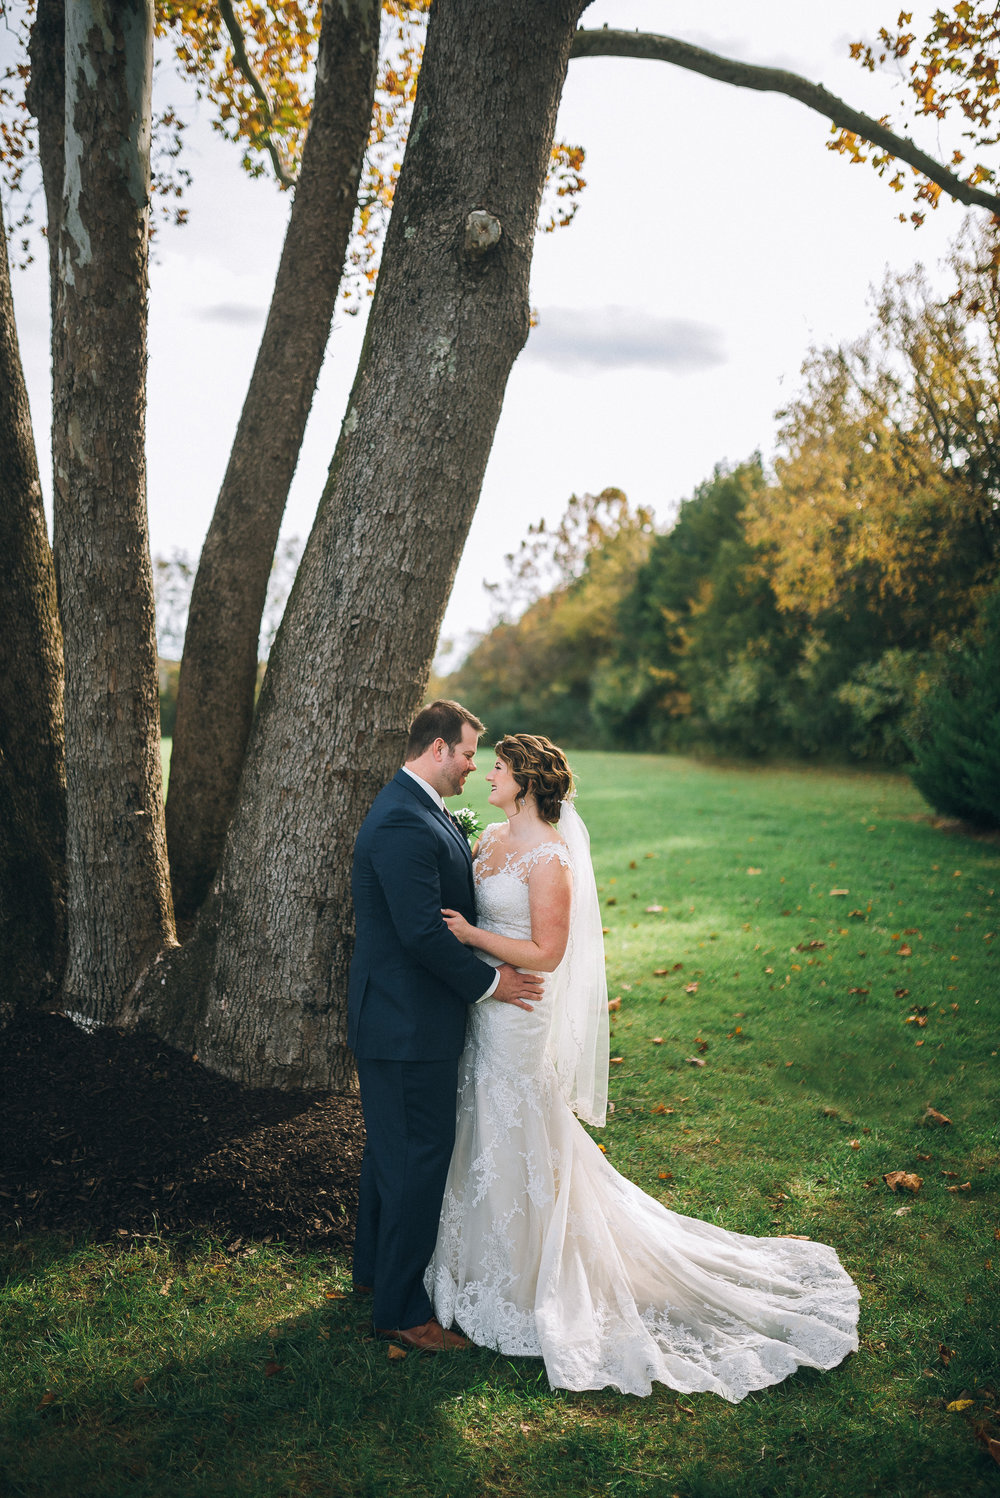 Katherine + Seth Wedding Nashville TN